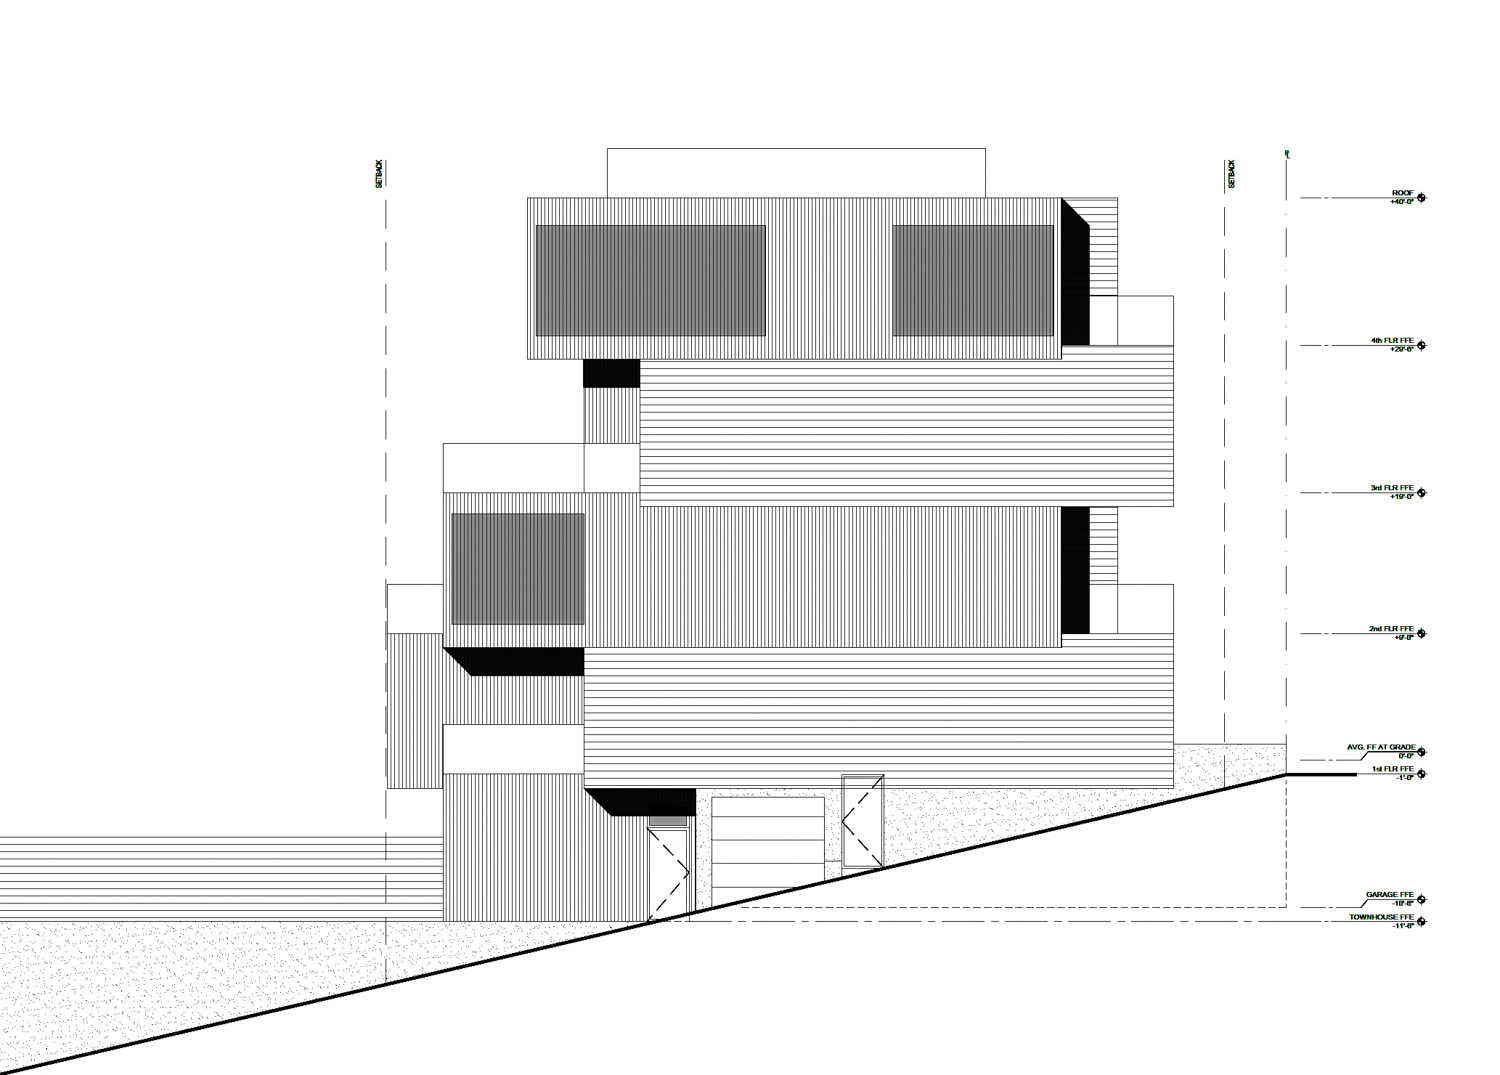 801 Rhode Island Street vertical view, illustration by Timbre Architecture